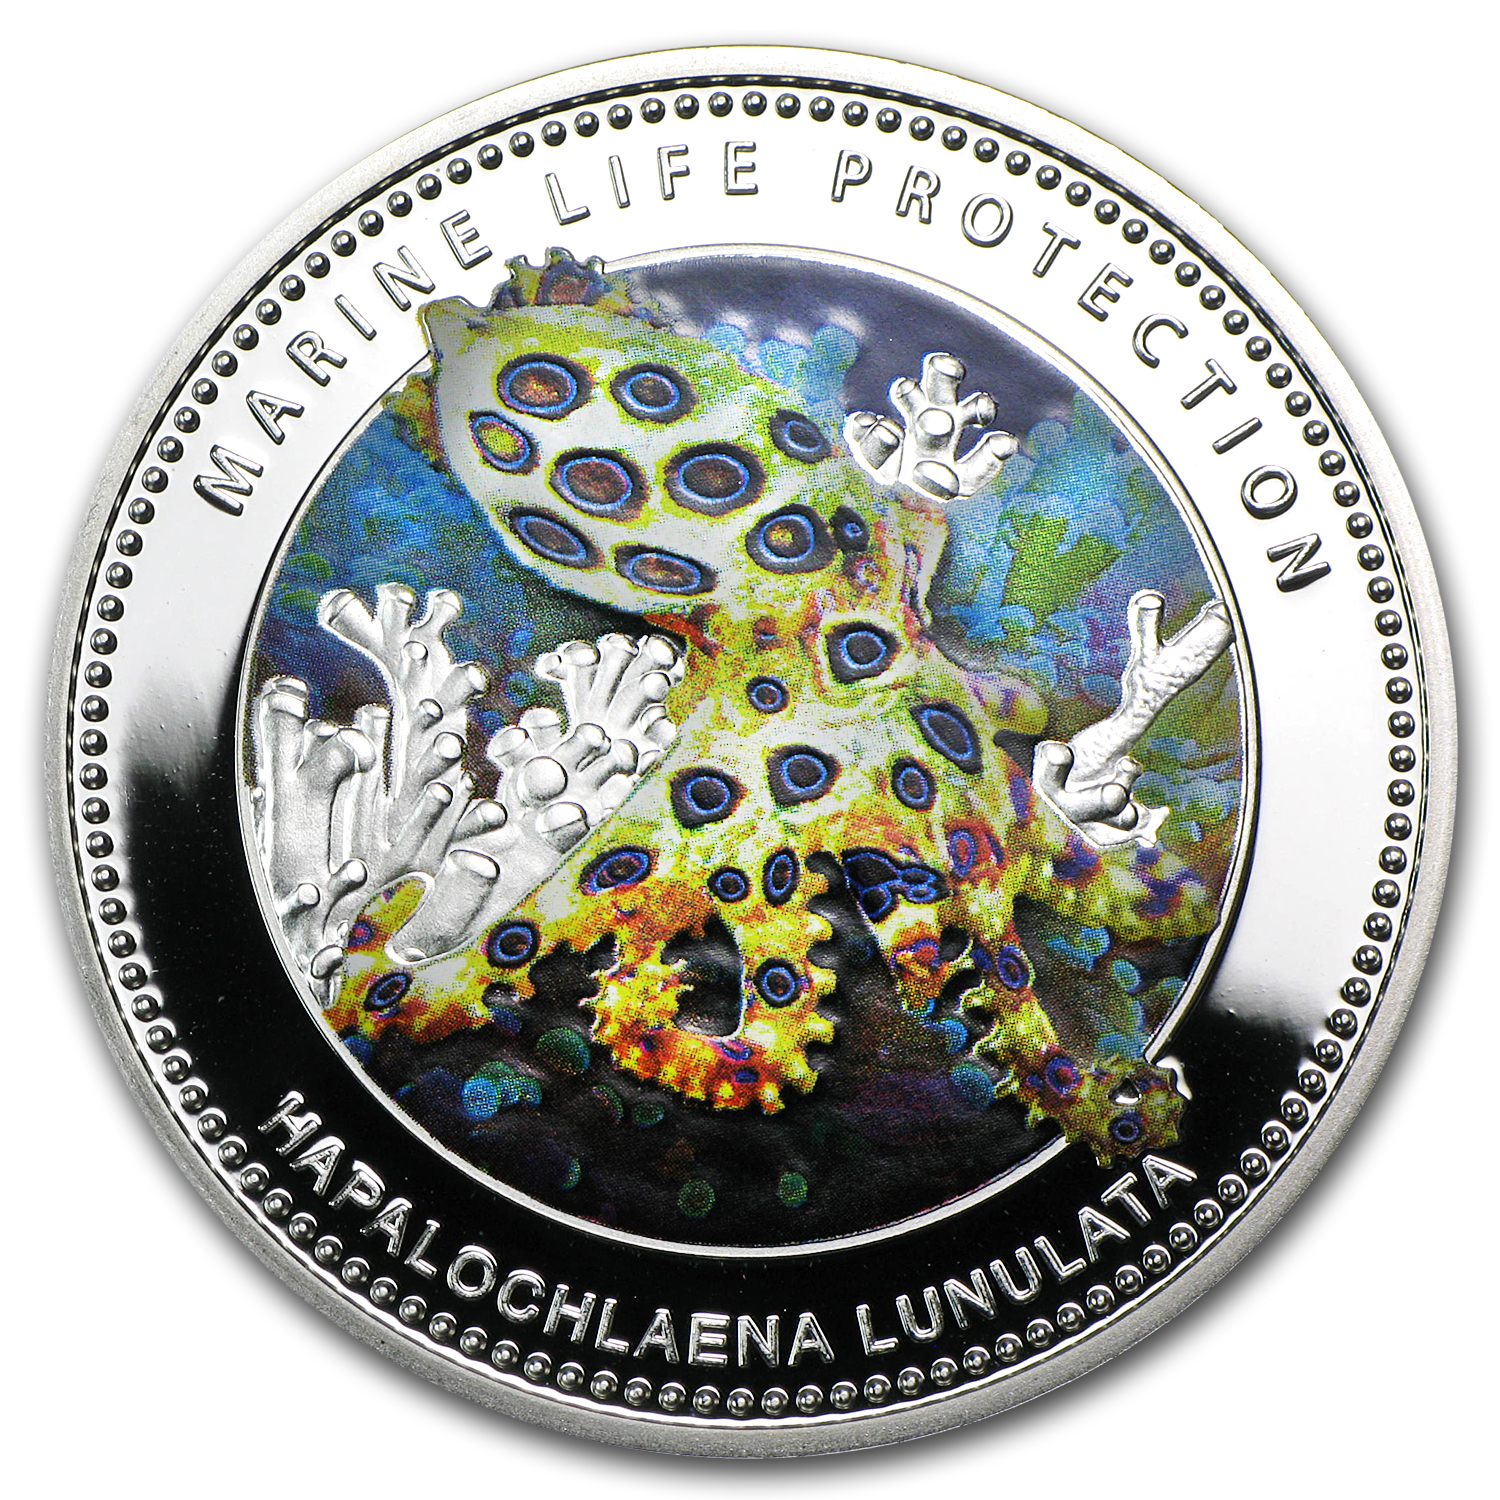 Palau 2012 Silver $5 Marine Life Protection - Blue Ringed Octopus